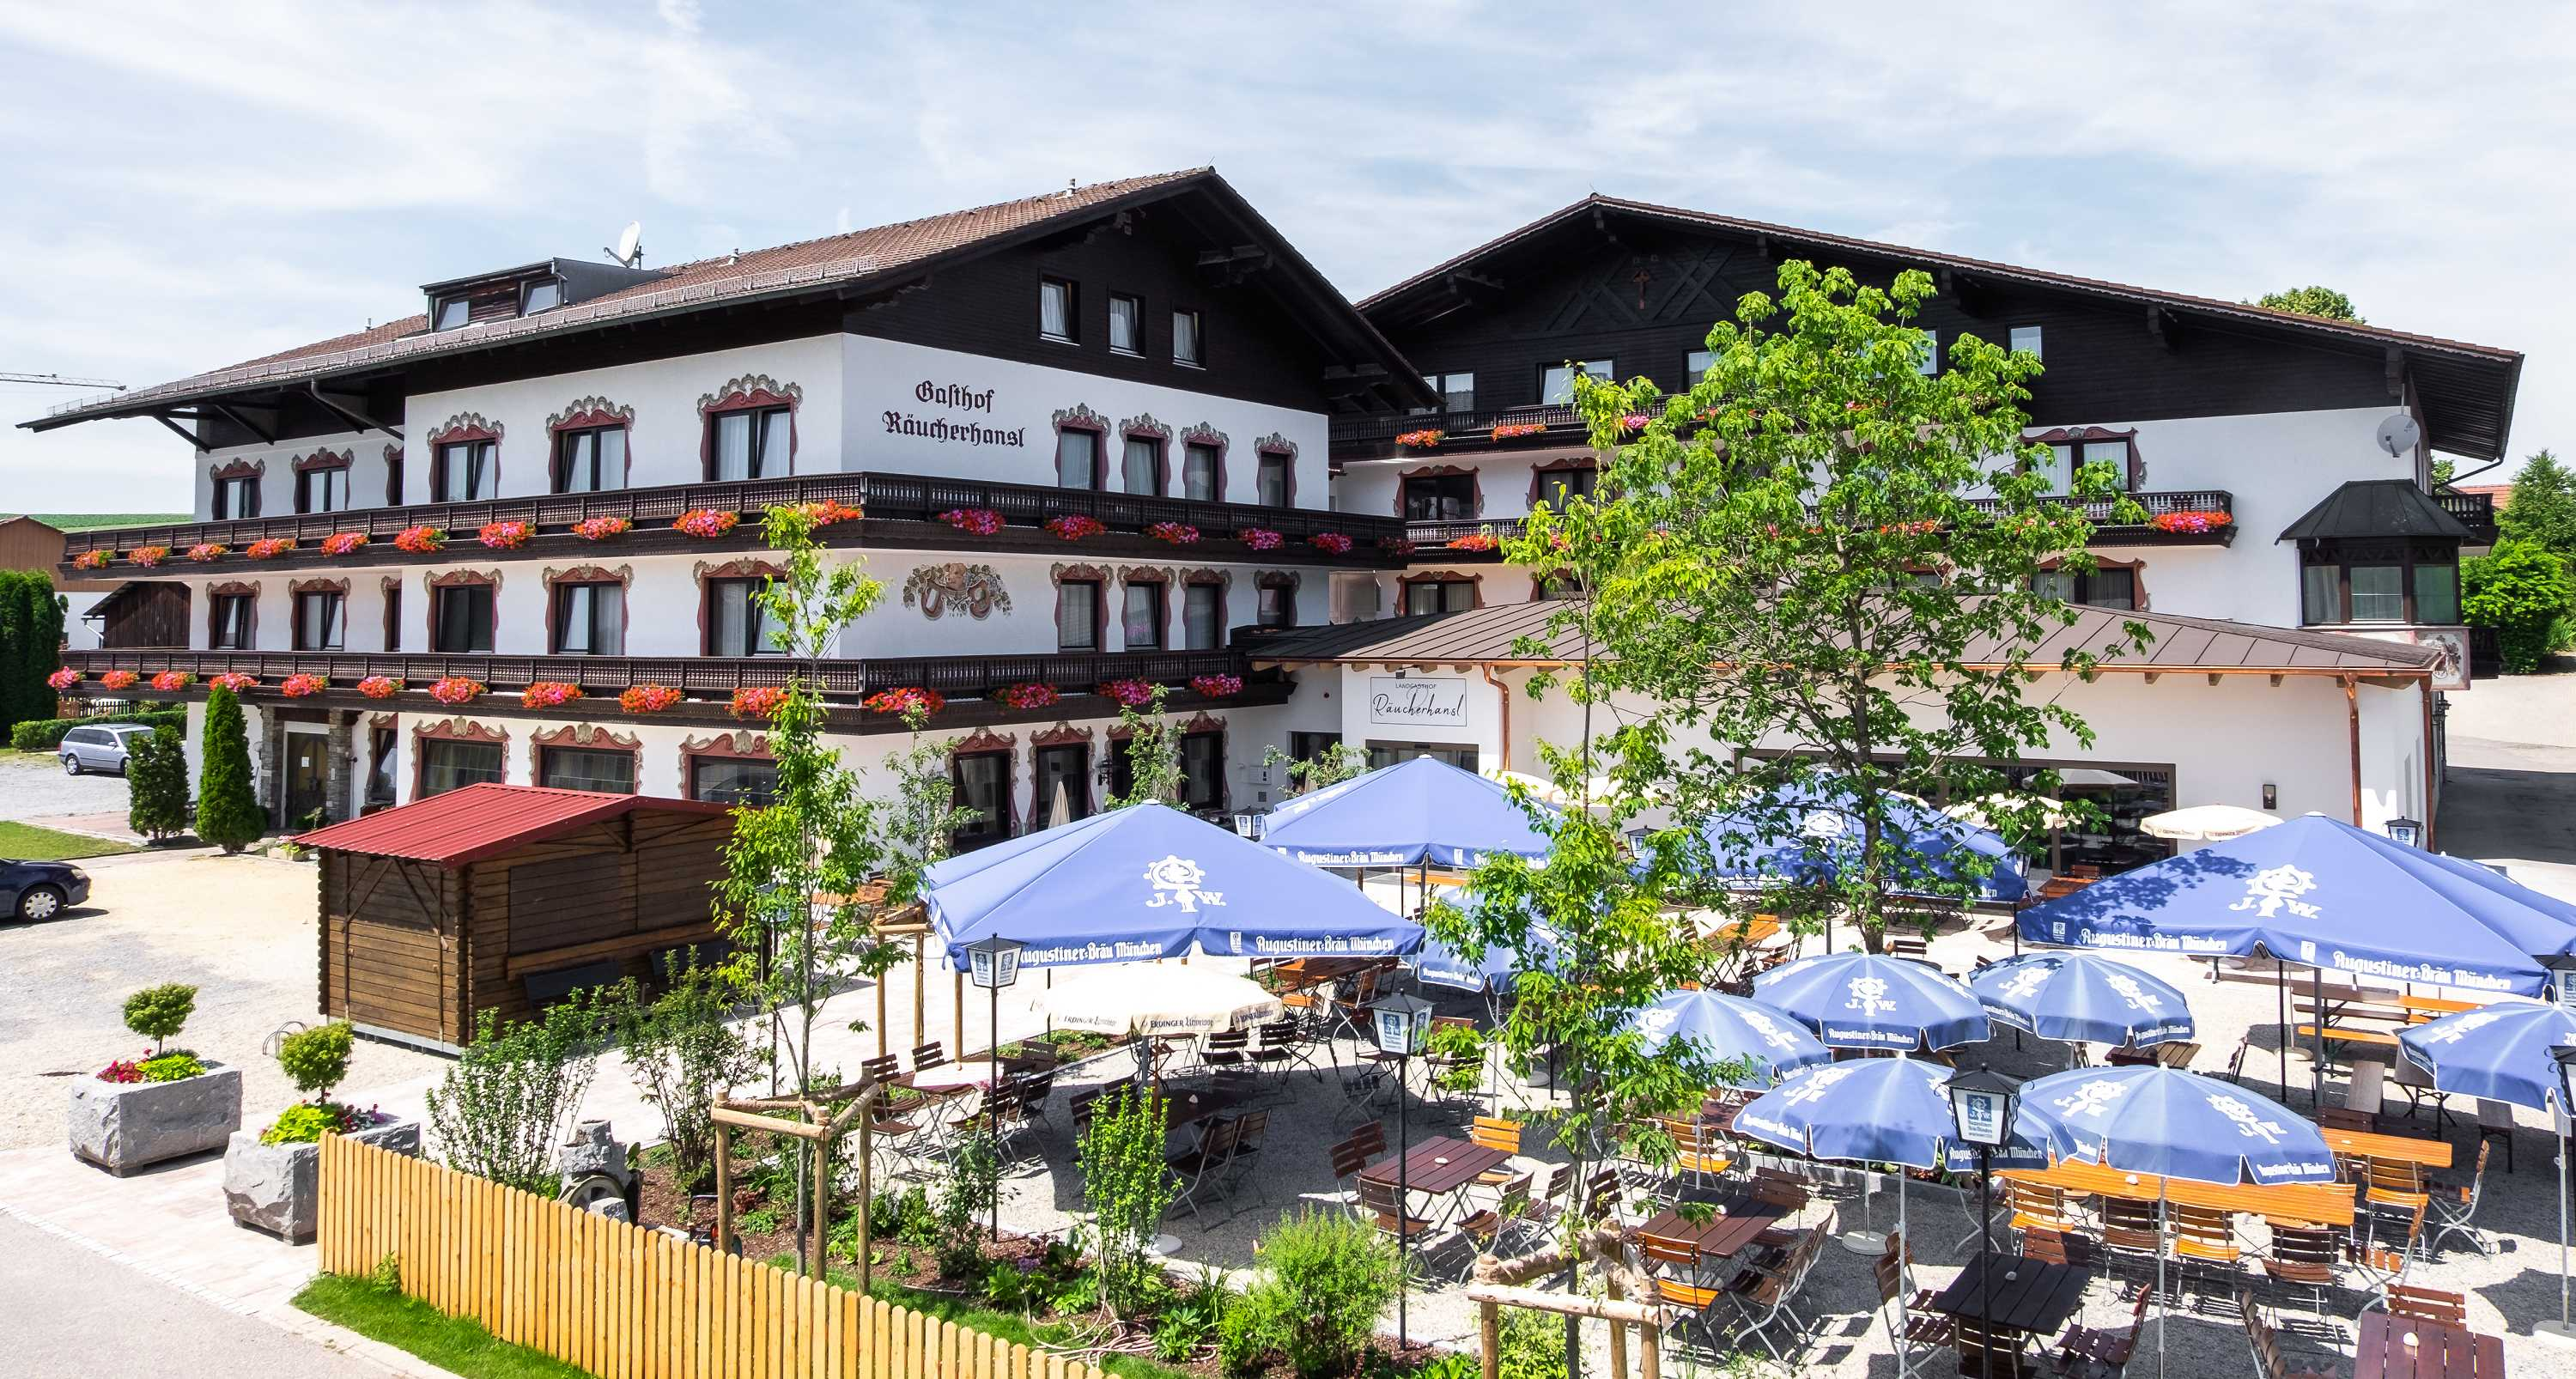 Hotel Reisbach Dingolfing